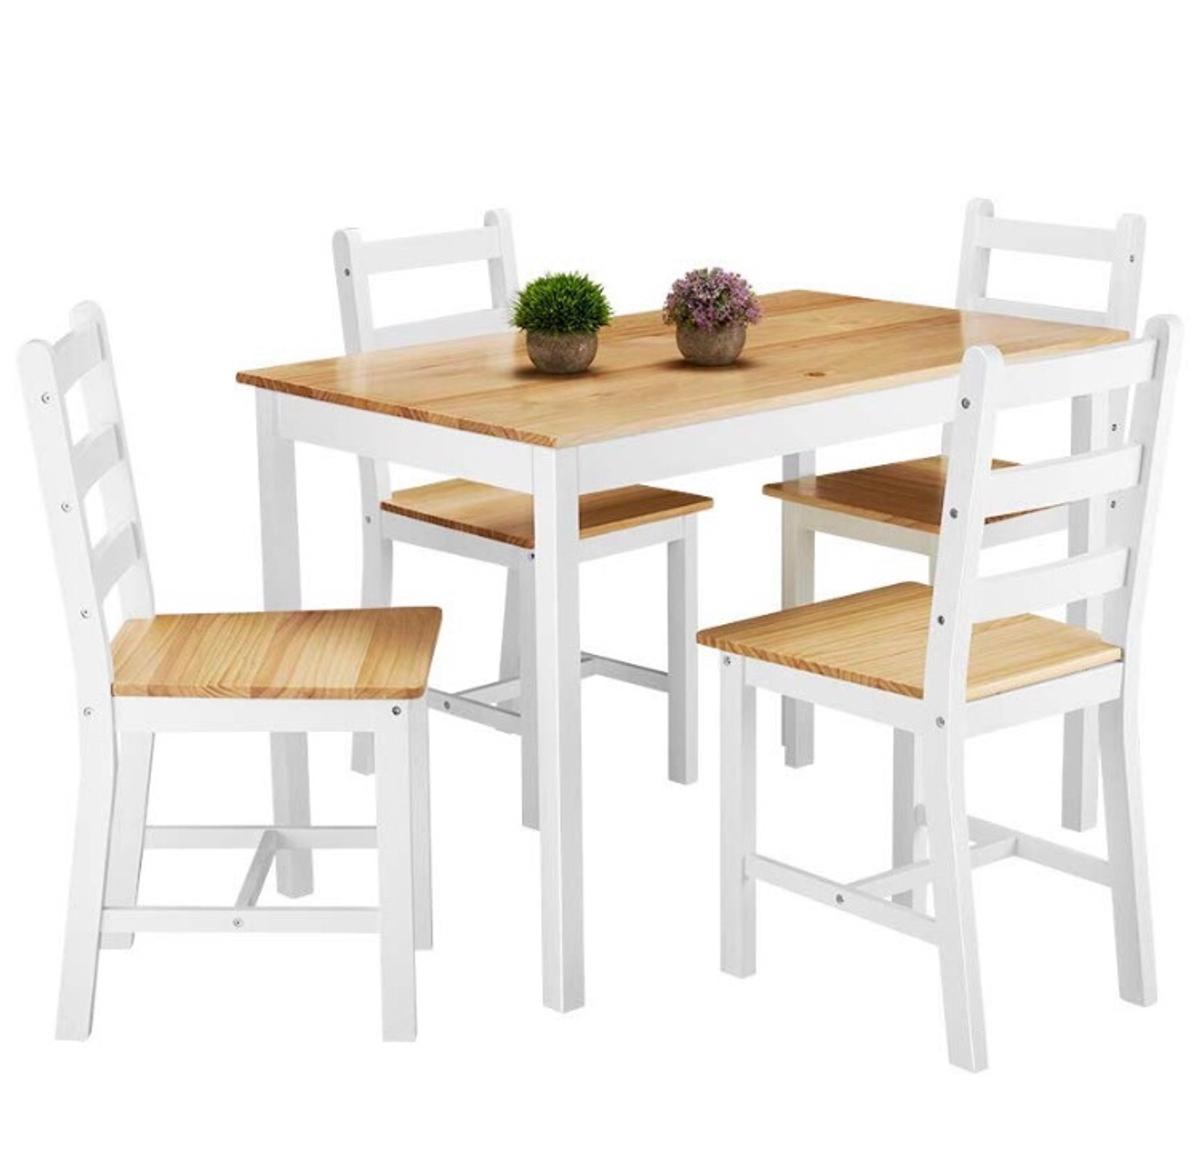 Used Dining Room Table And Chairs Dining Room Table And Chairs